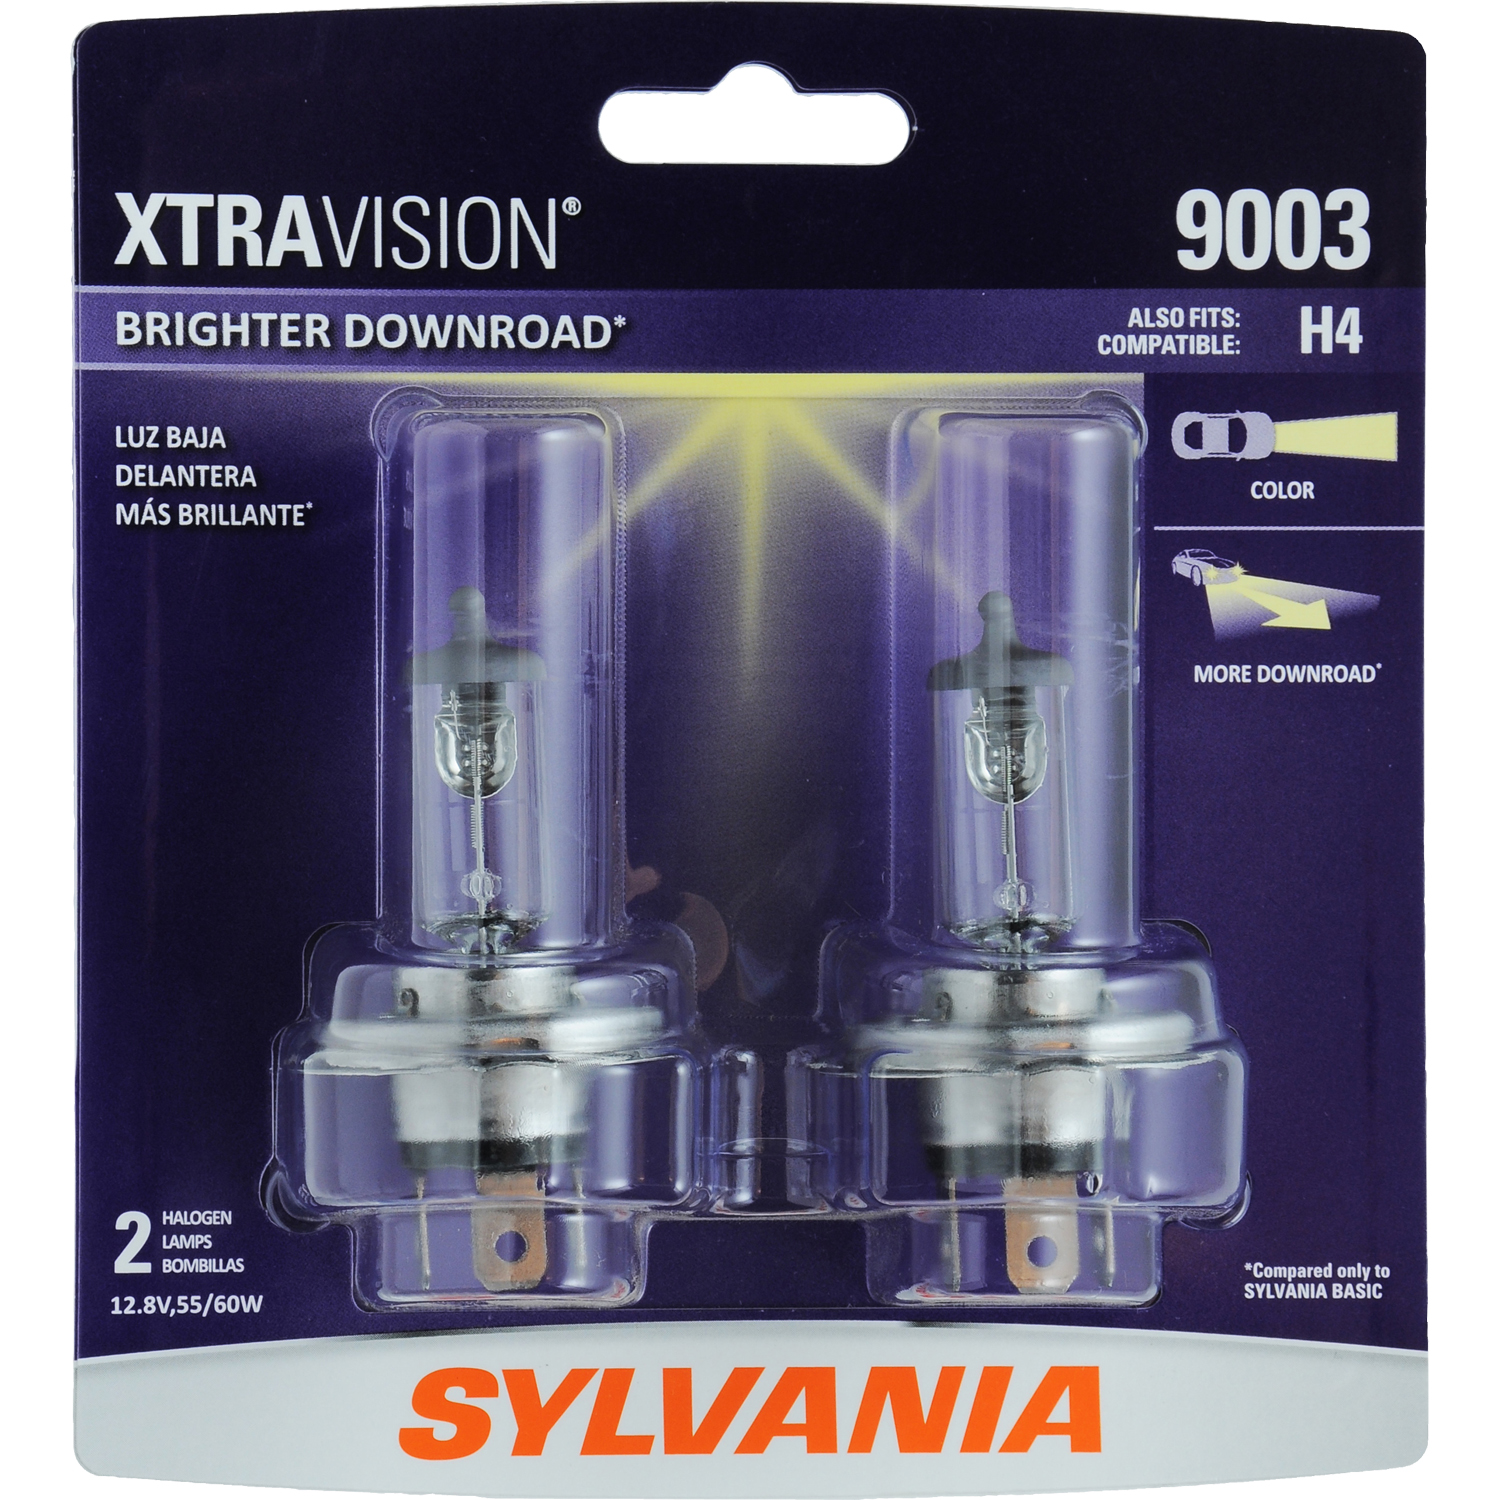 SYLVANIA 9003 XtraVision Halogen Headlight Bulb, Pack of 2